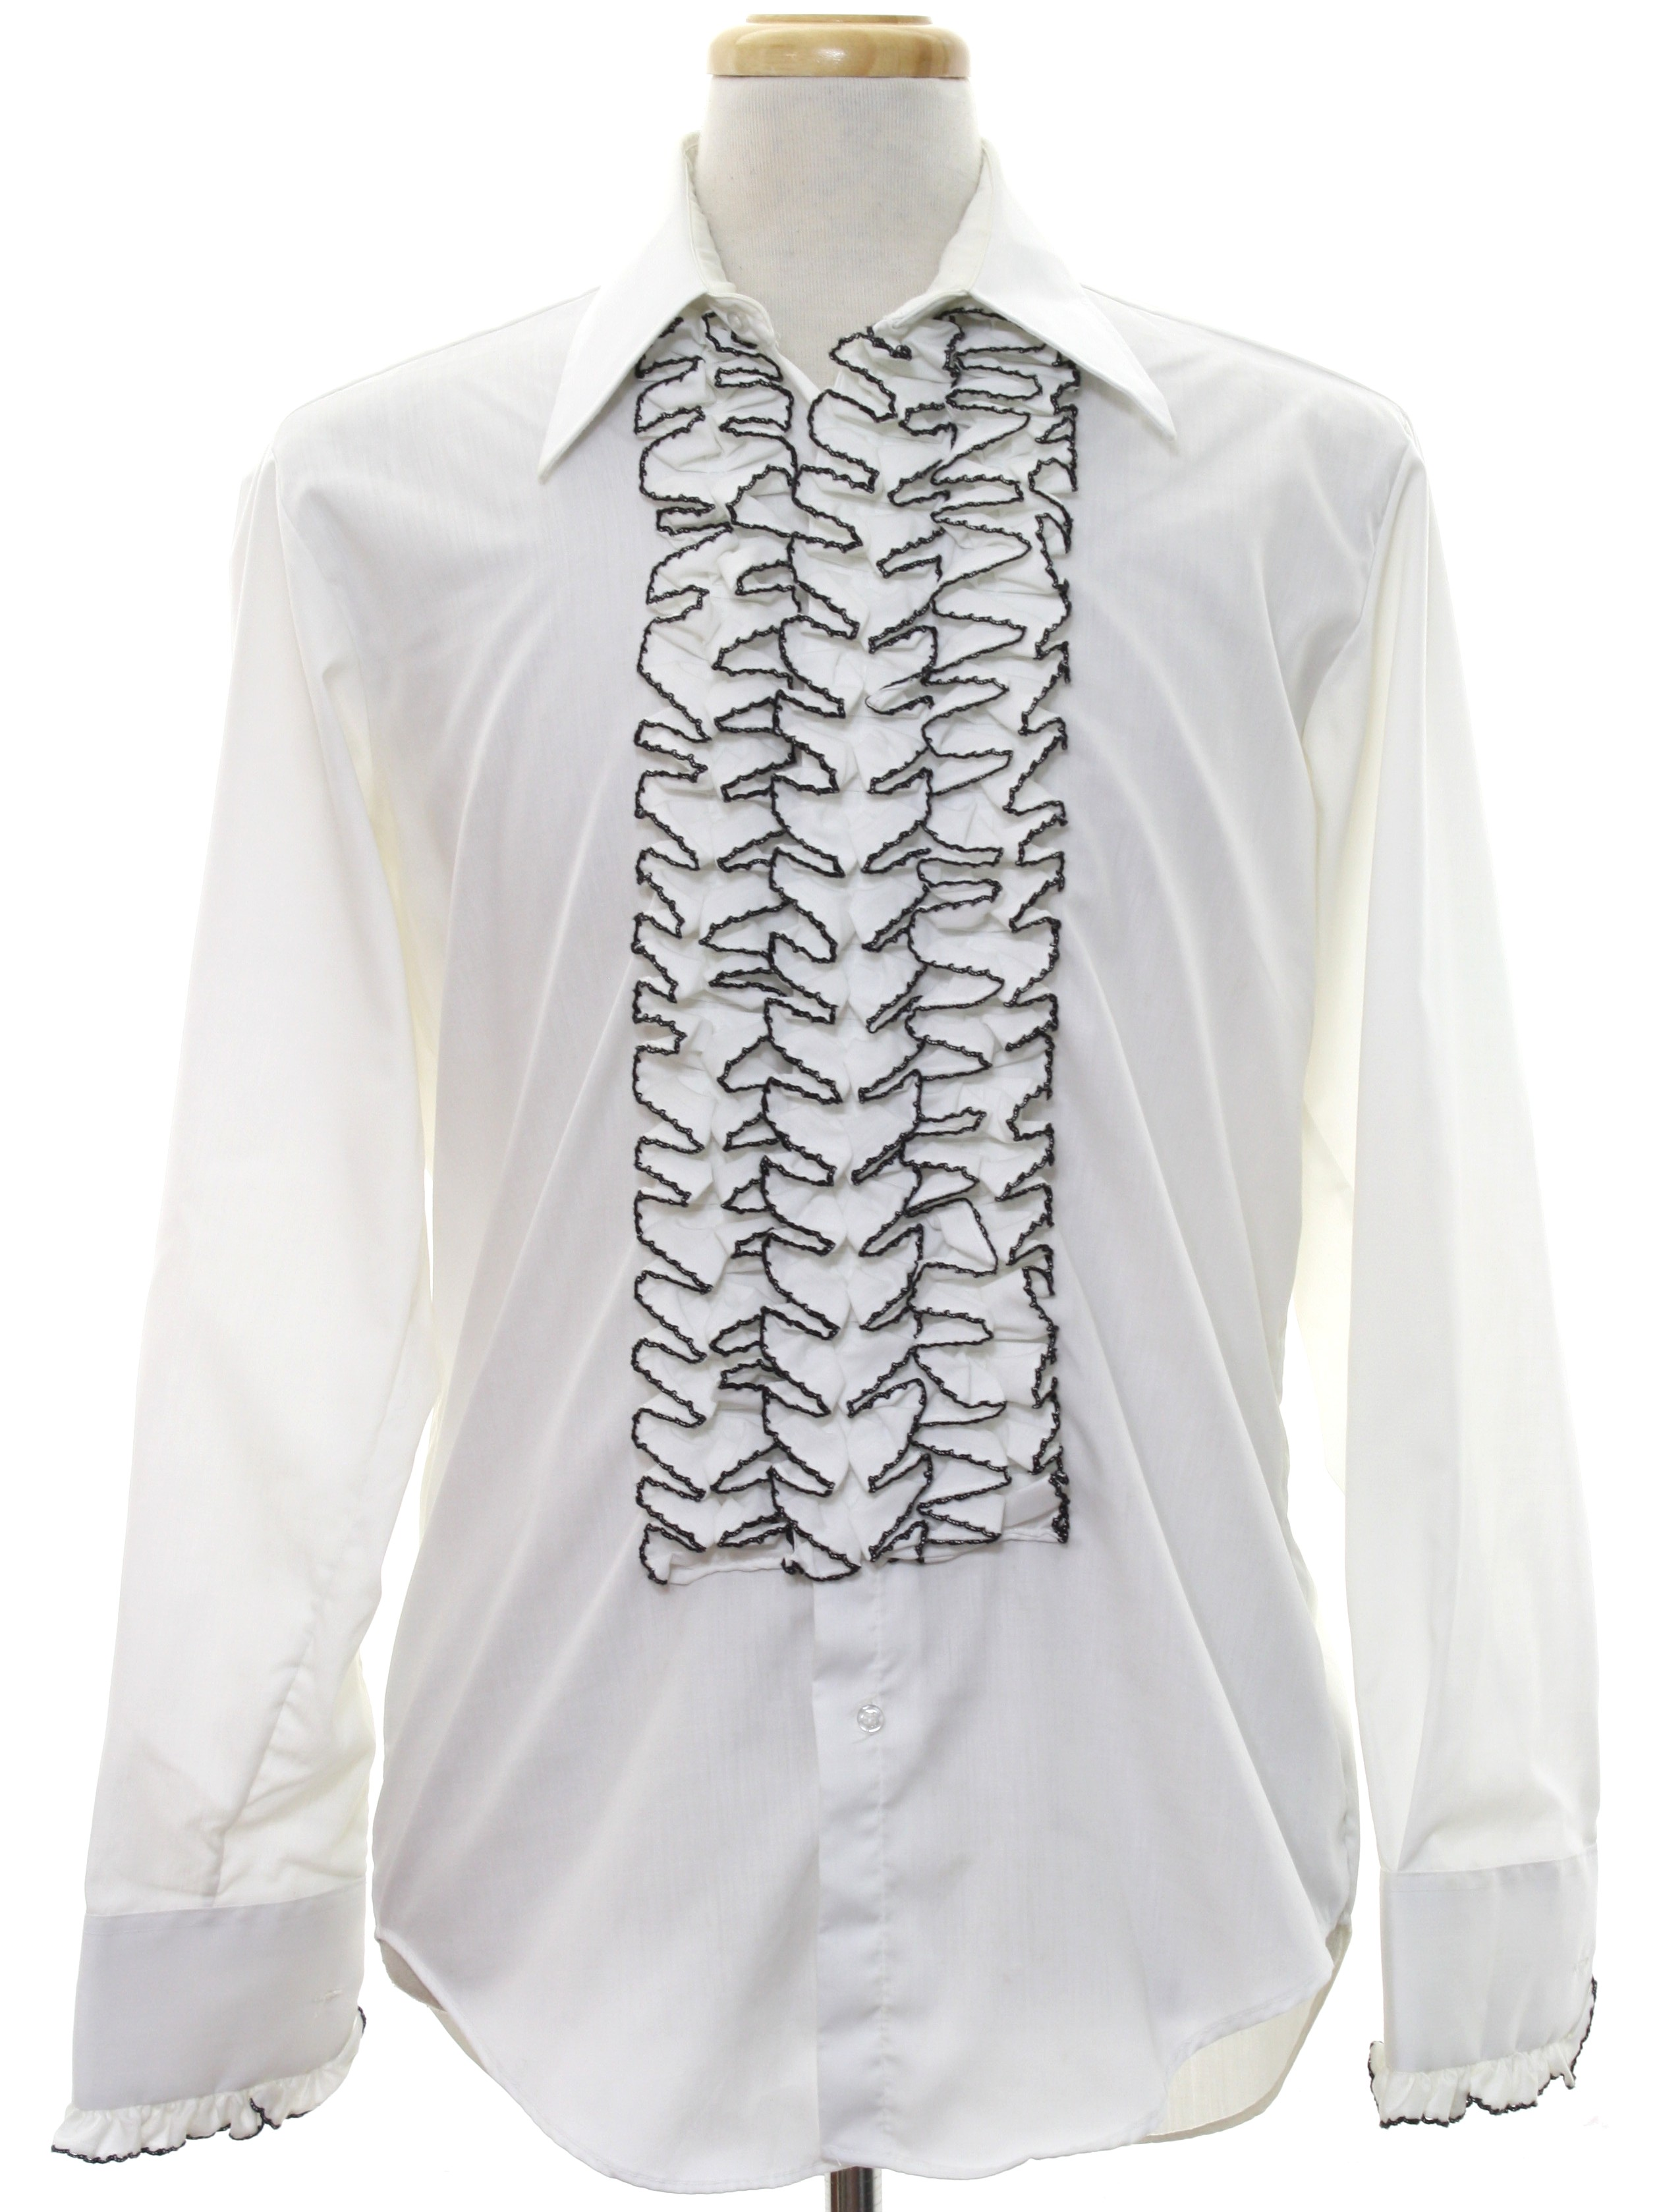 70 39 s after six shirt 70s after six mens white for Frilly shirts for men